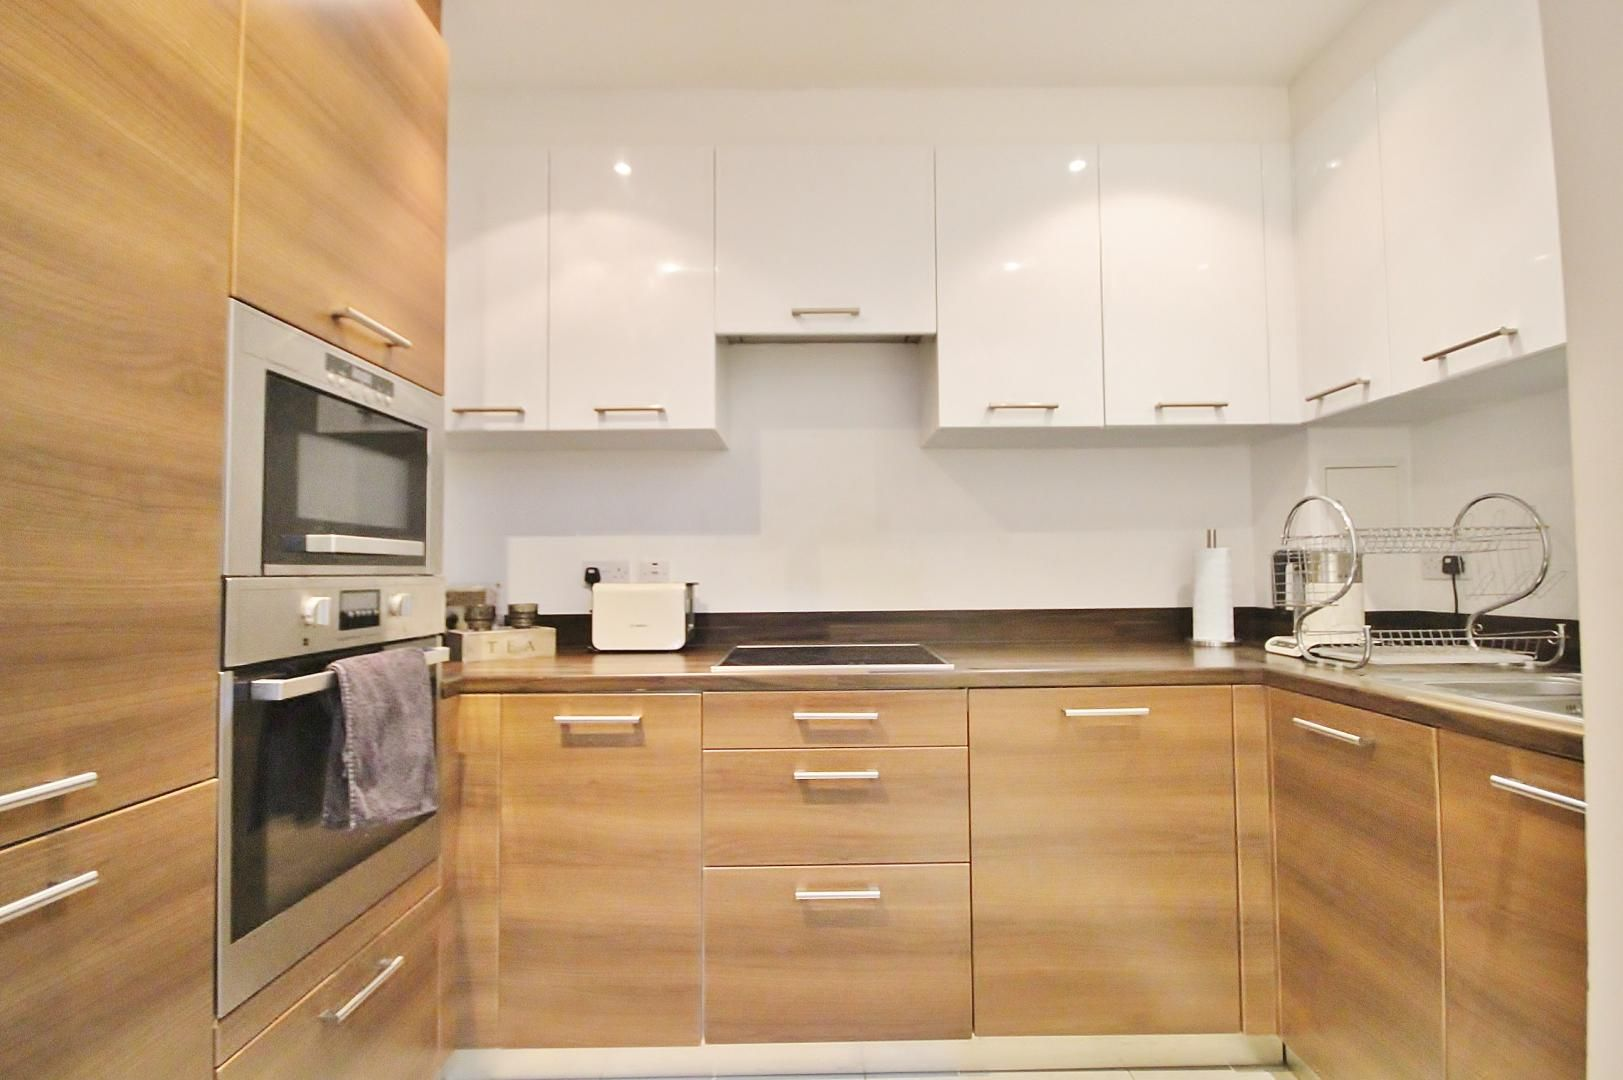 2 bed flat to rent in Forge Square, E14